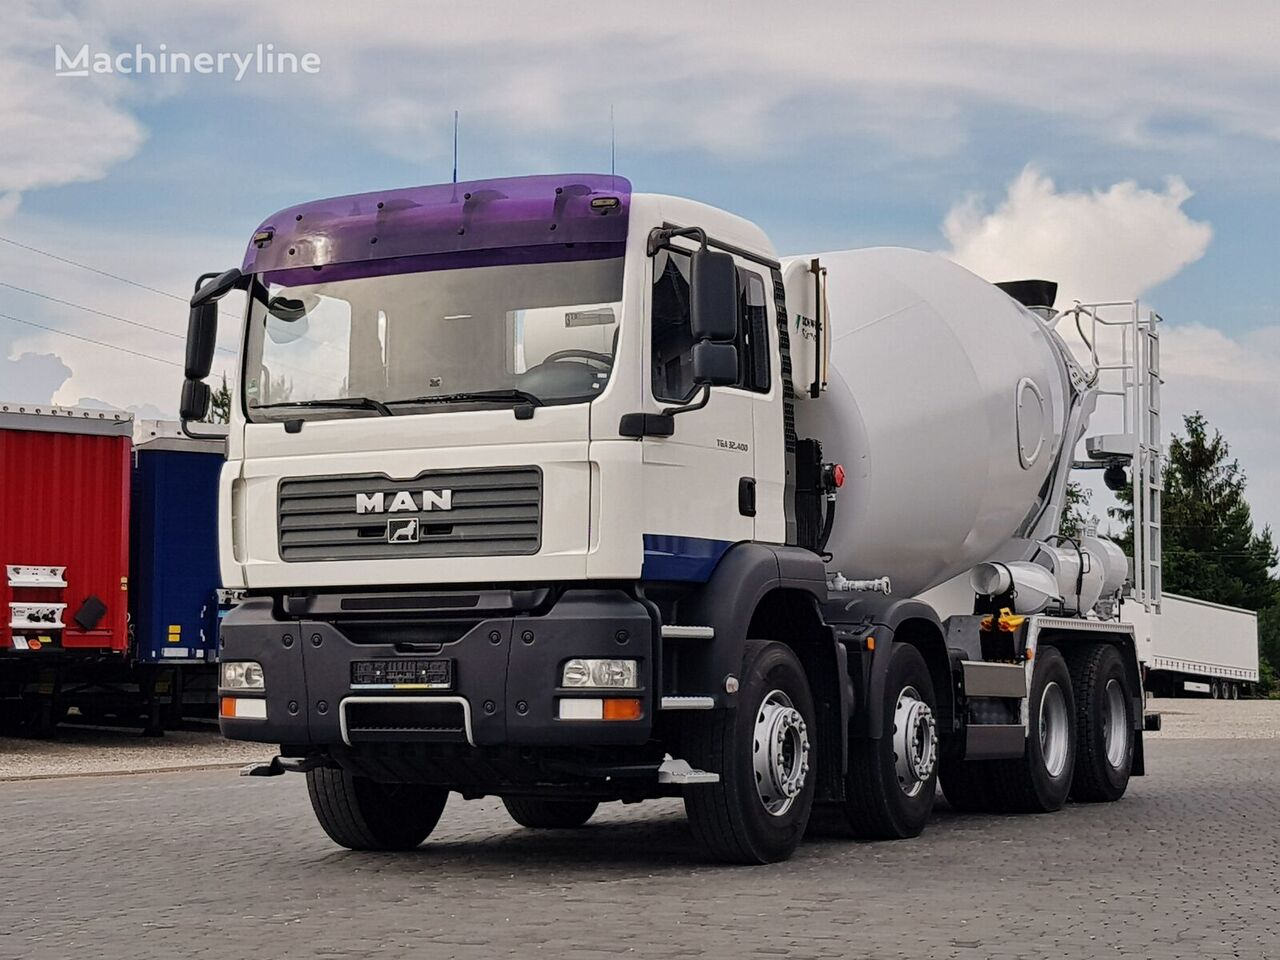 Stetter 9m3 on chassis MAN TGA 35.400 8X4 MANUAL STETTER 9m3 IMPORT German 2007 concrete mixer truck